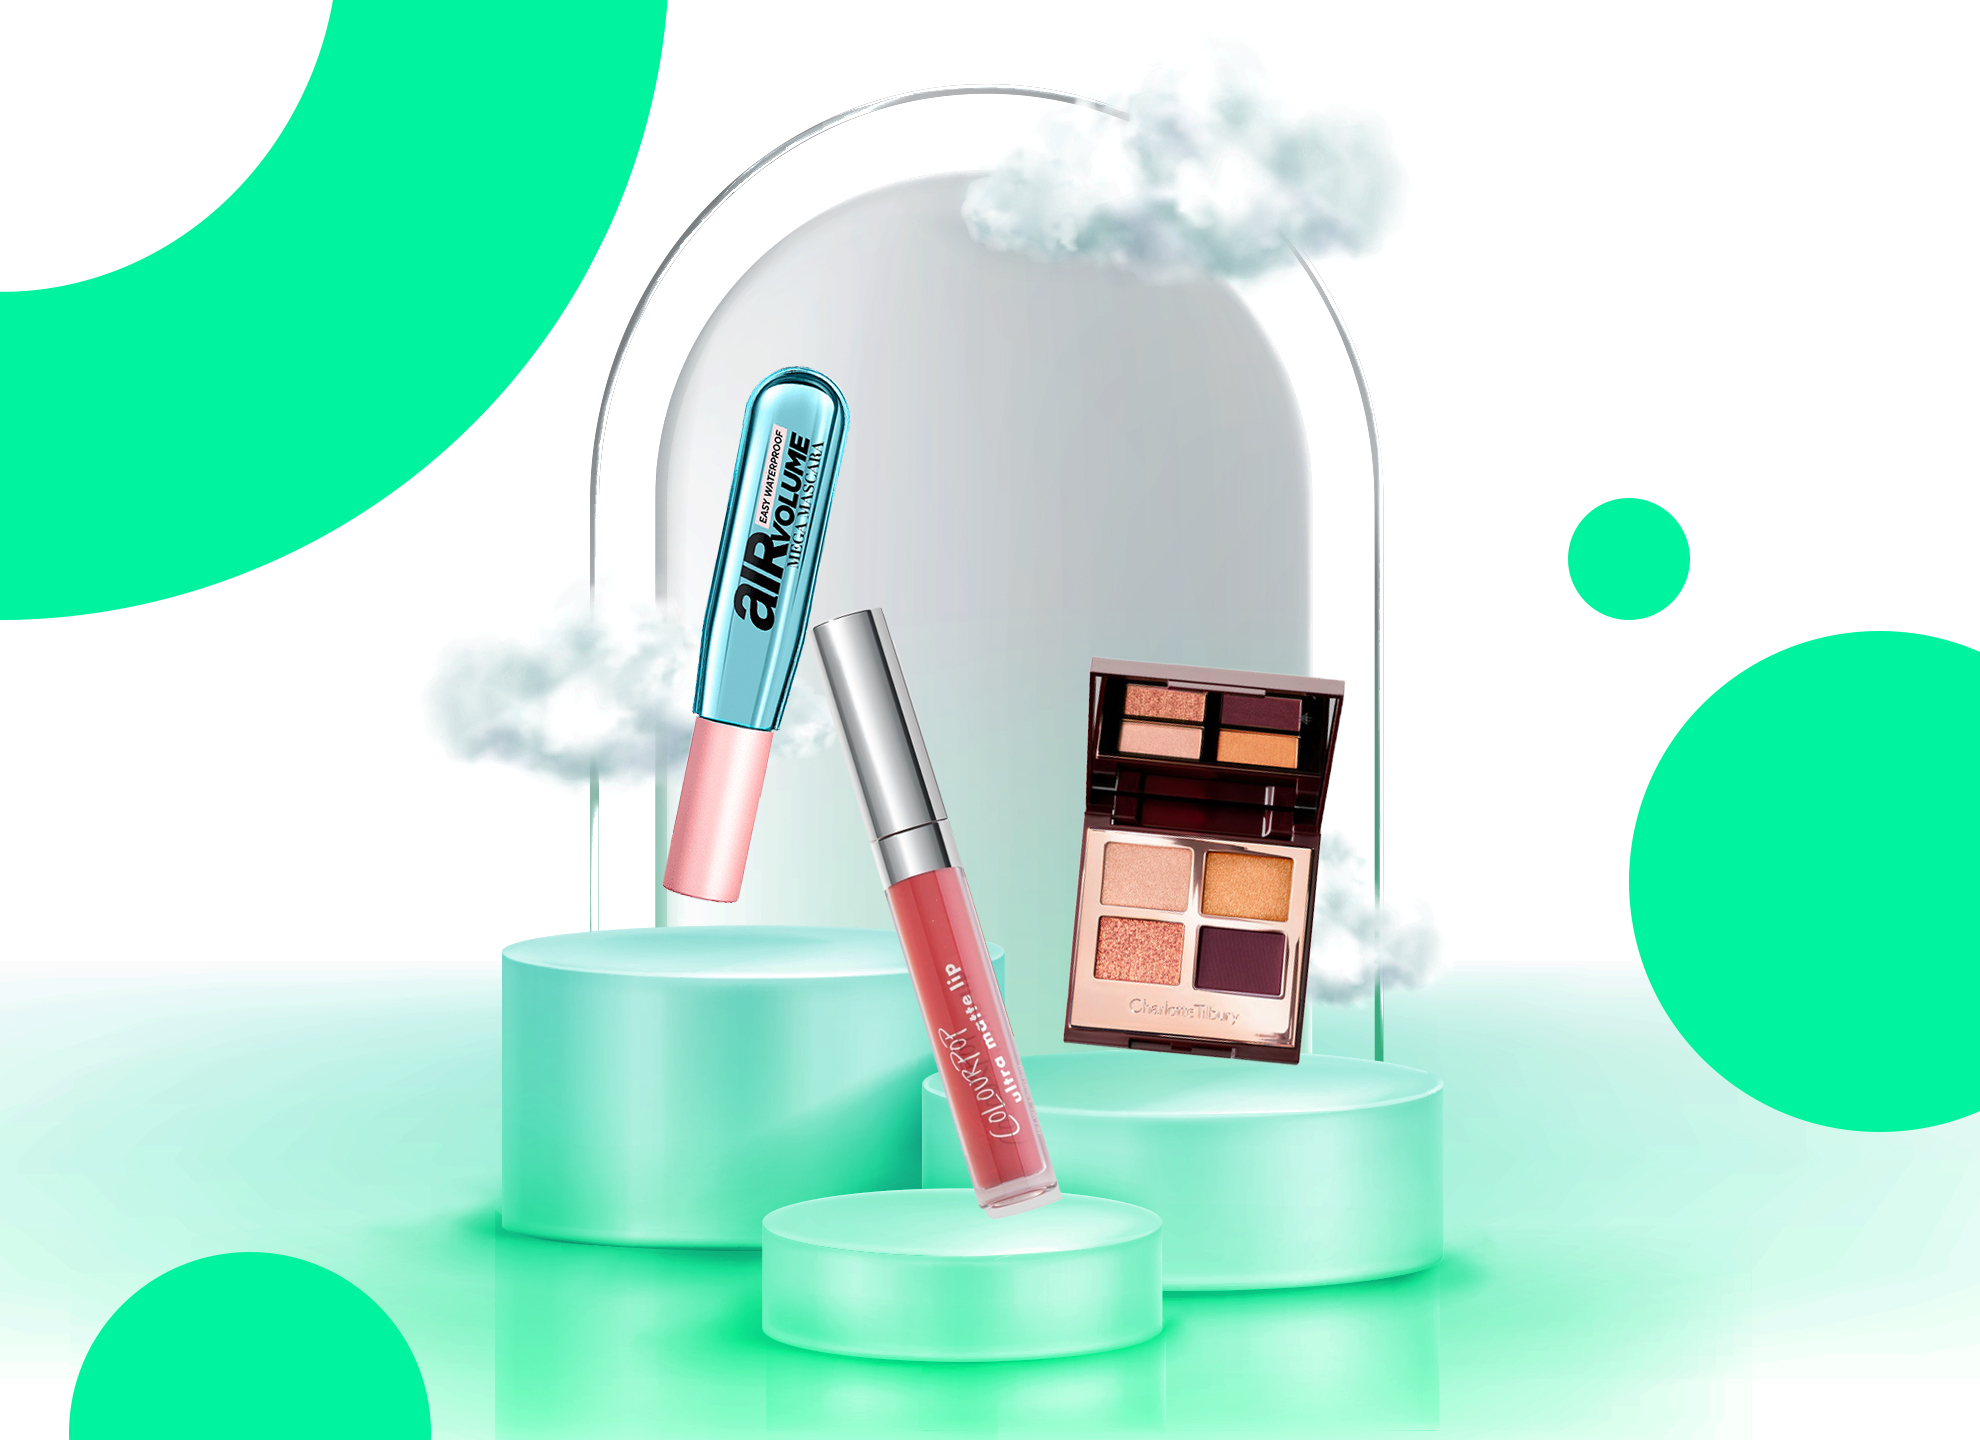 pink lipstick eyeshadow palette and lipgloss on podiums next to a mirror on a green background